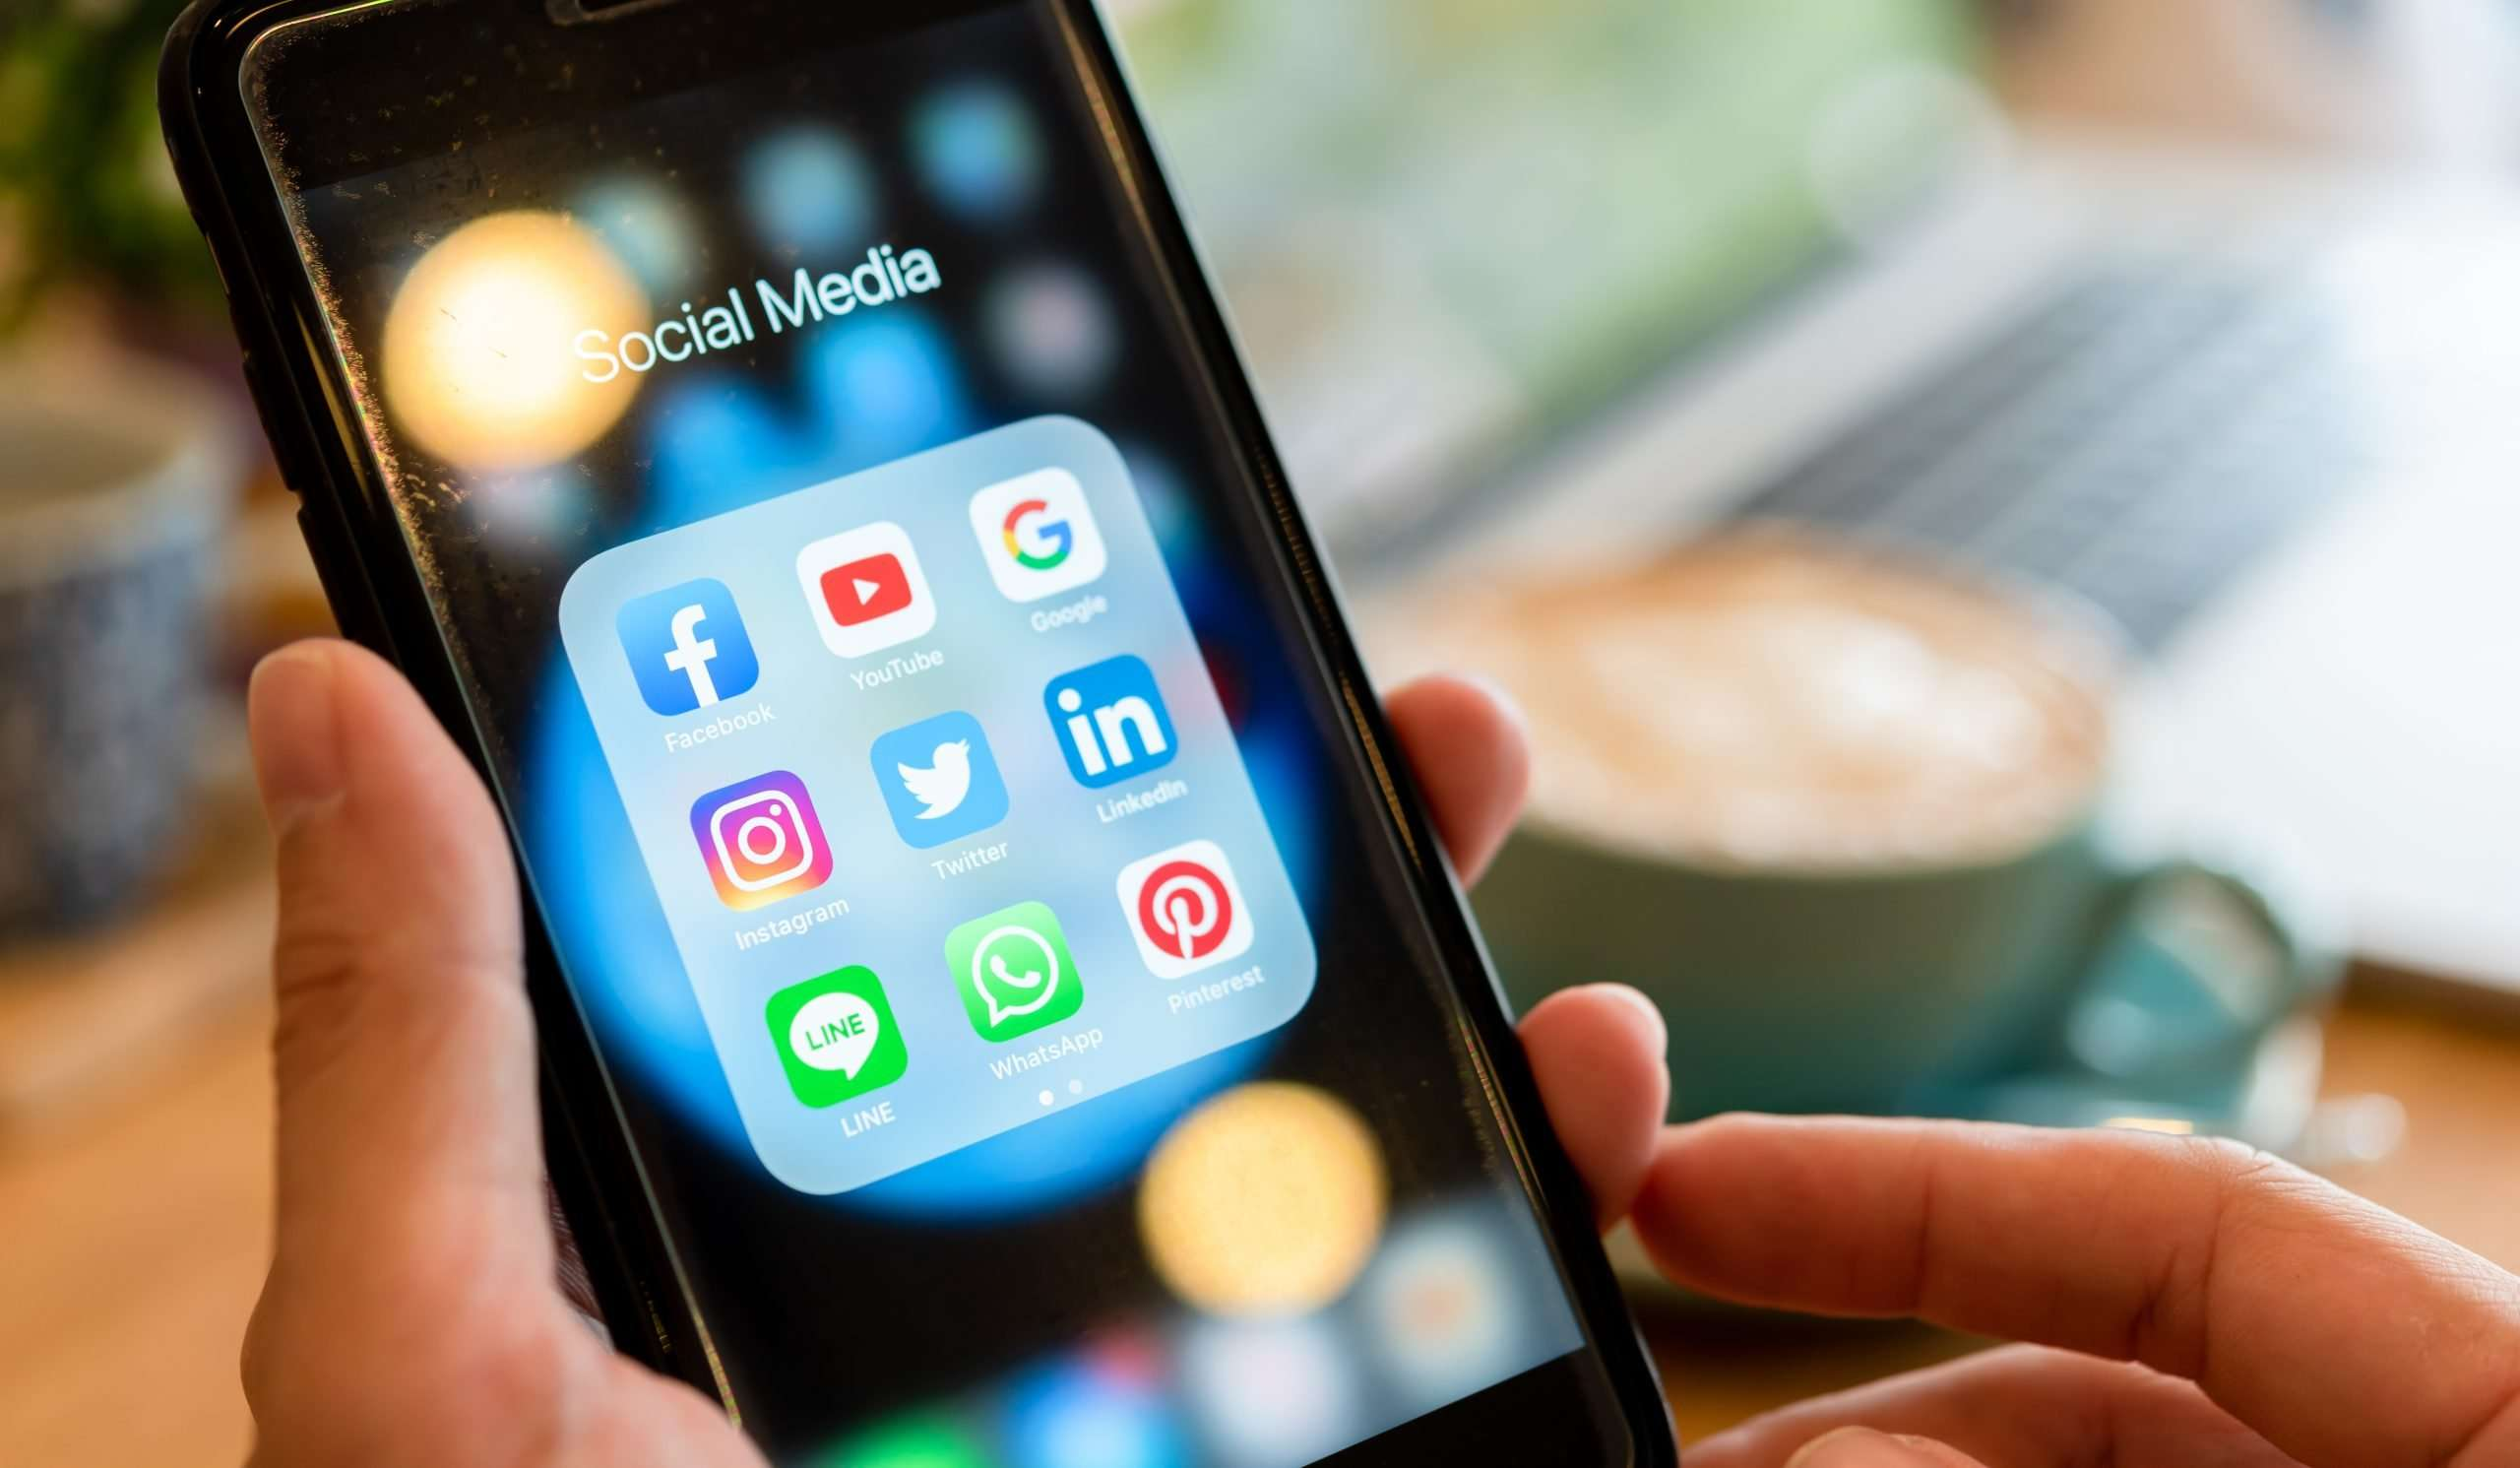 What can a social media consultant do for your business?